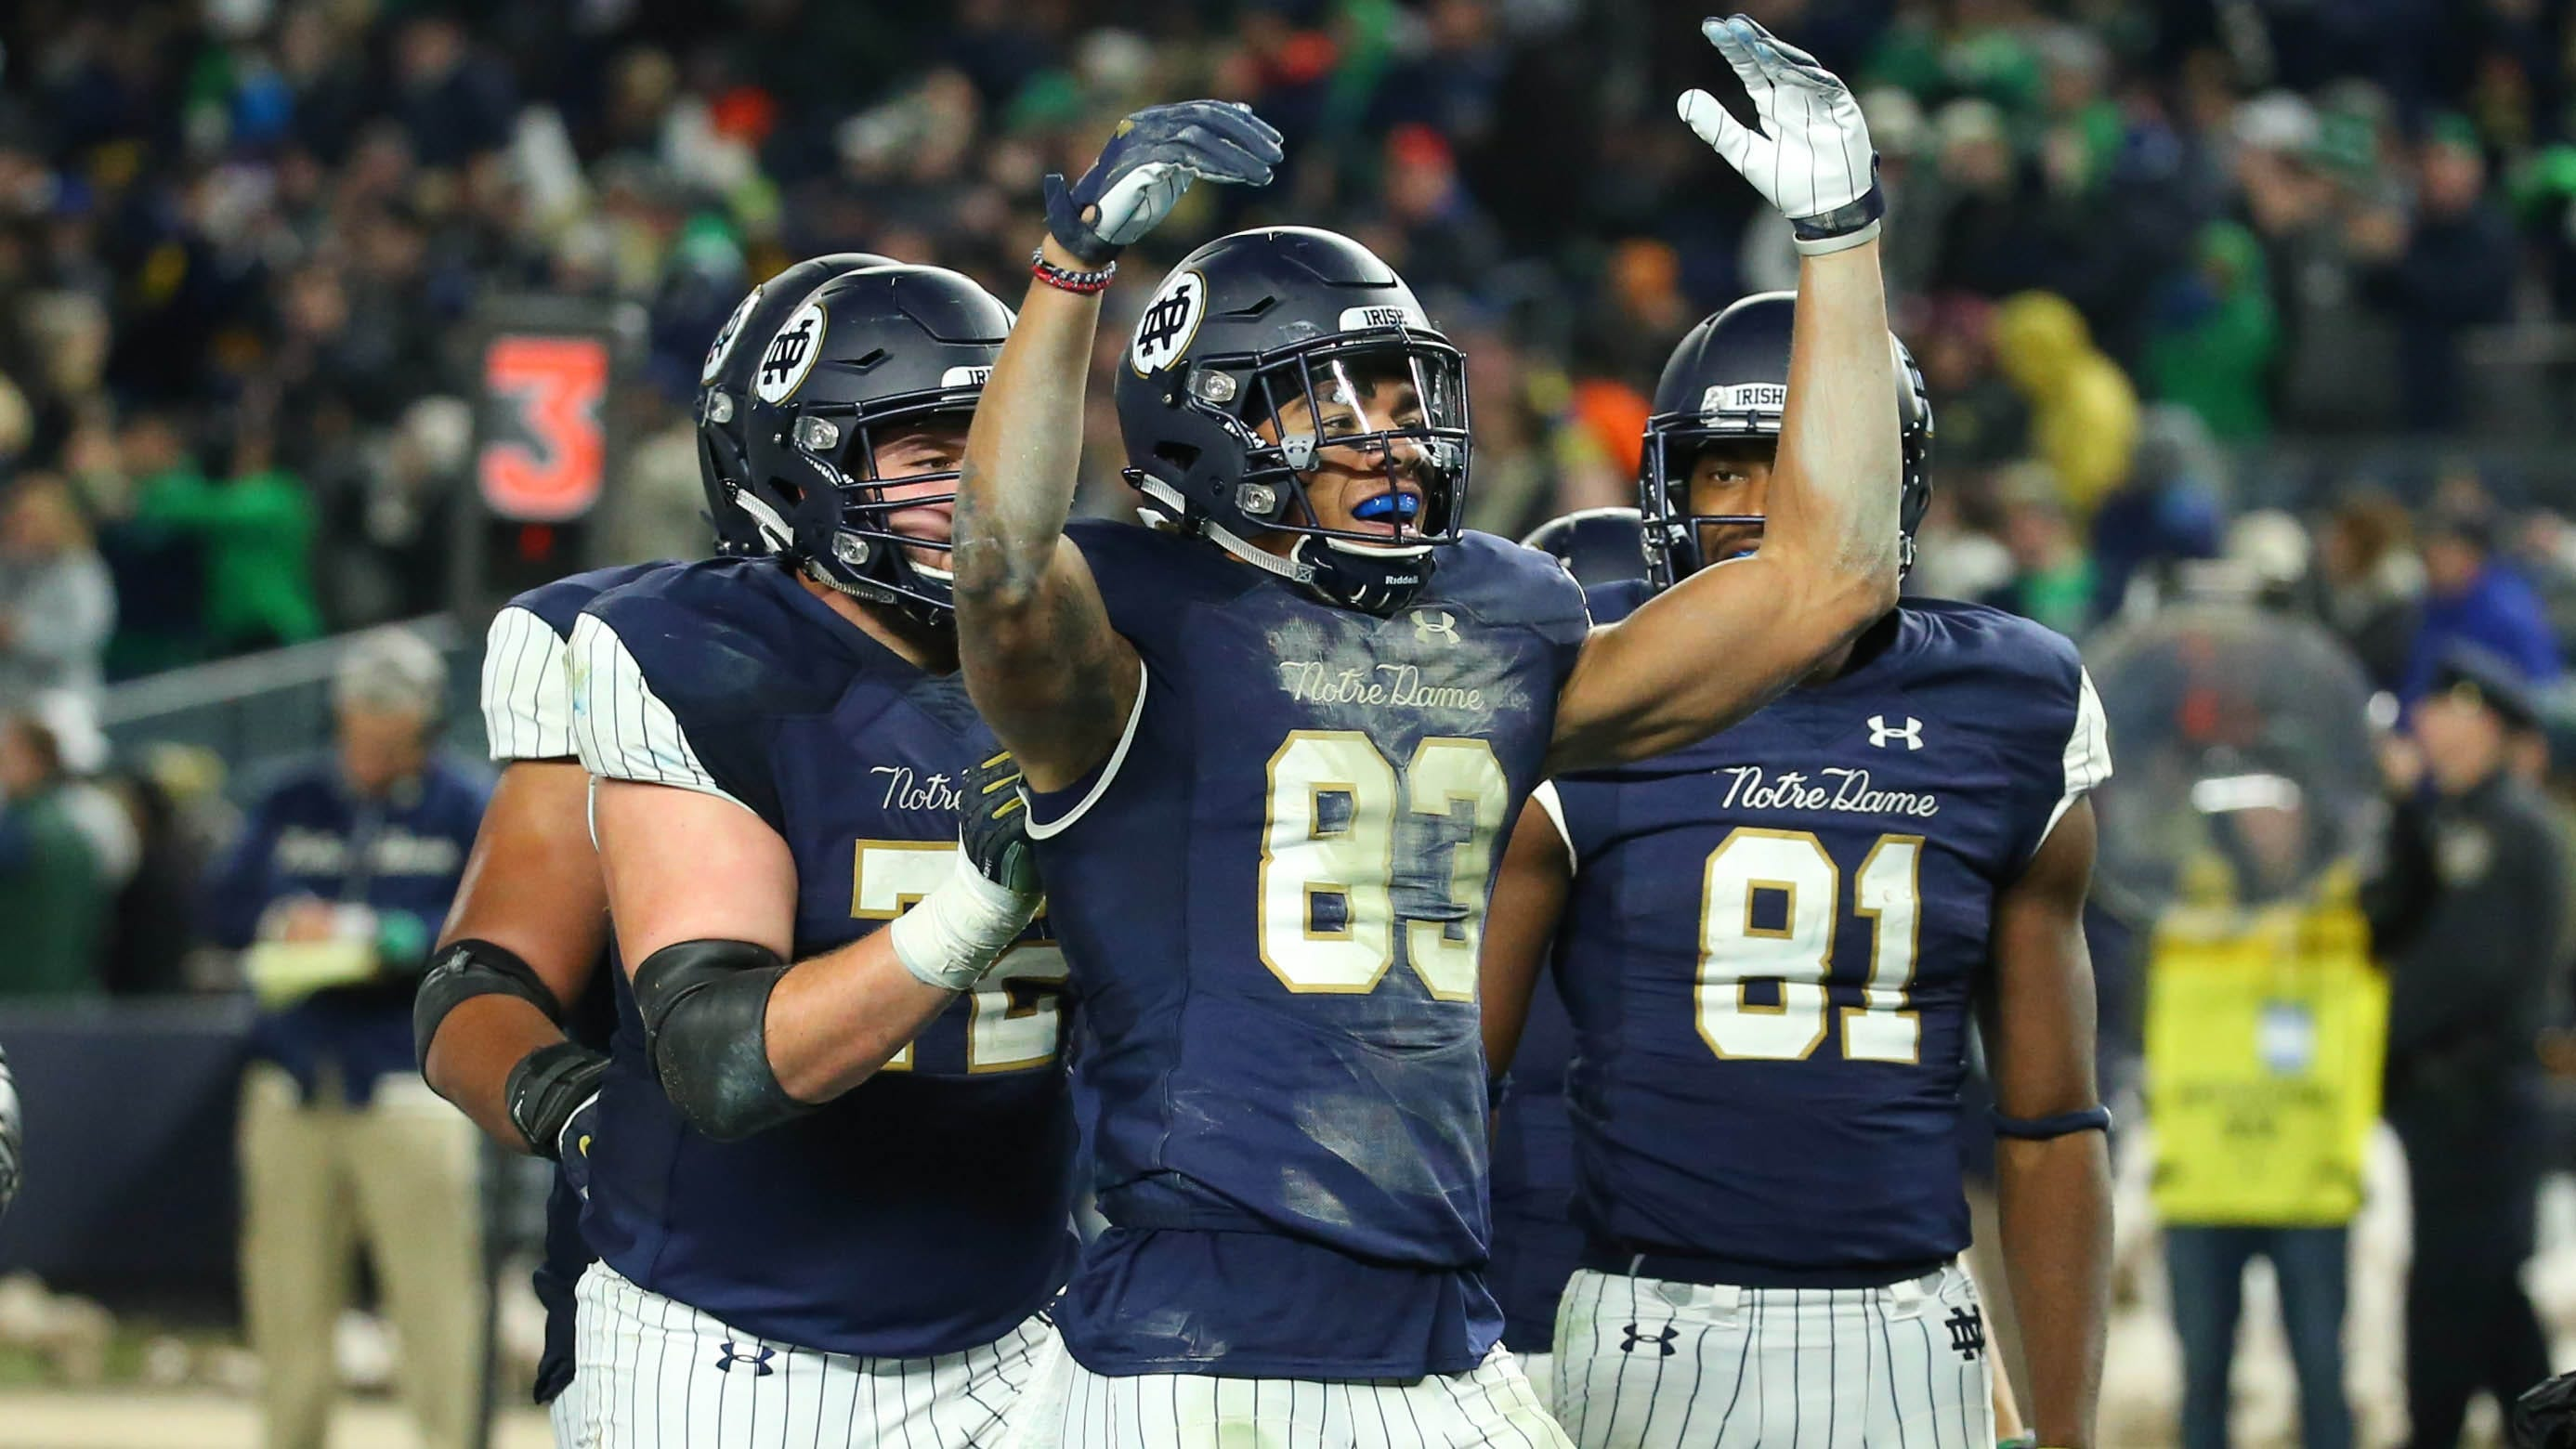 A2b199f5-60fd-4c22-a0c7-2beab5b8b7d3-usp_ncaa_football-_syracuse_at_notre_dame